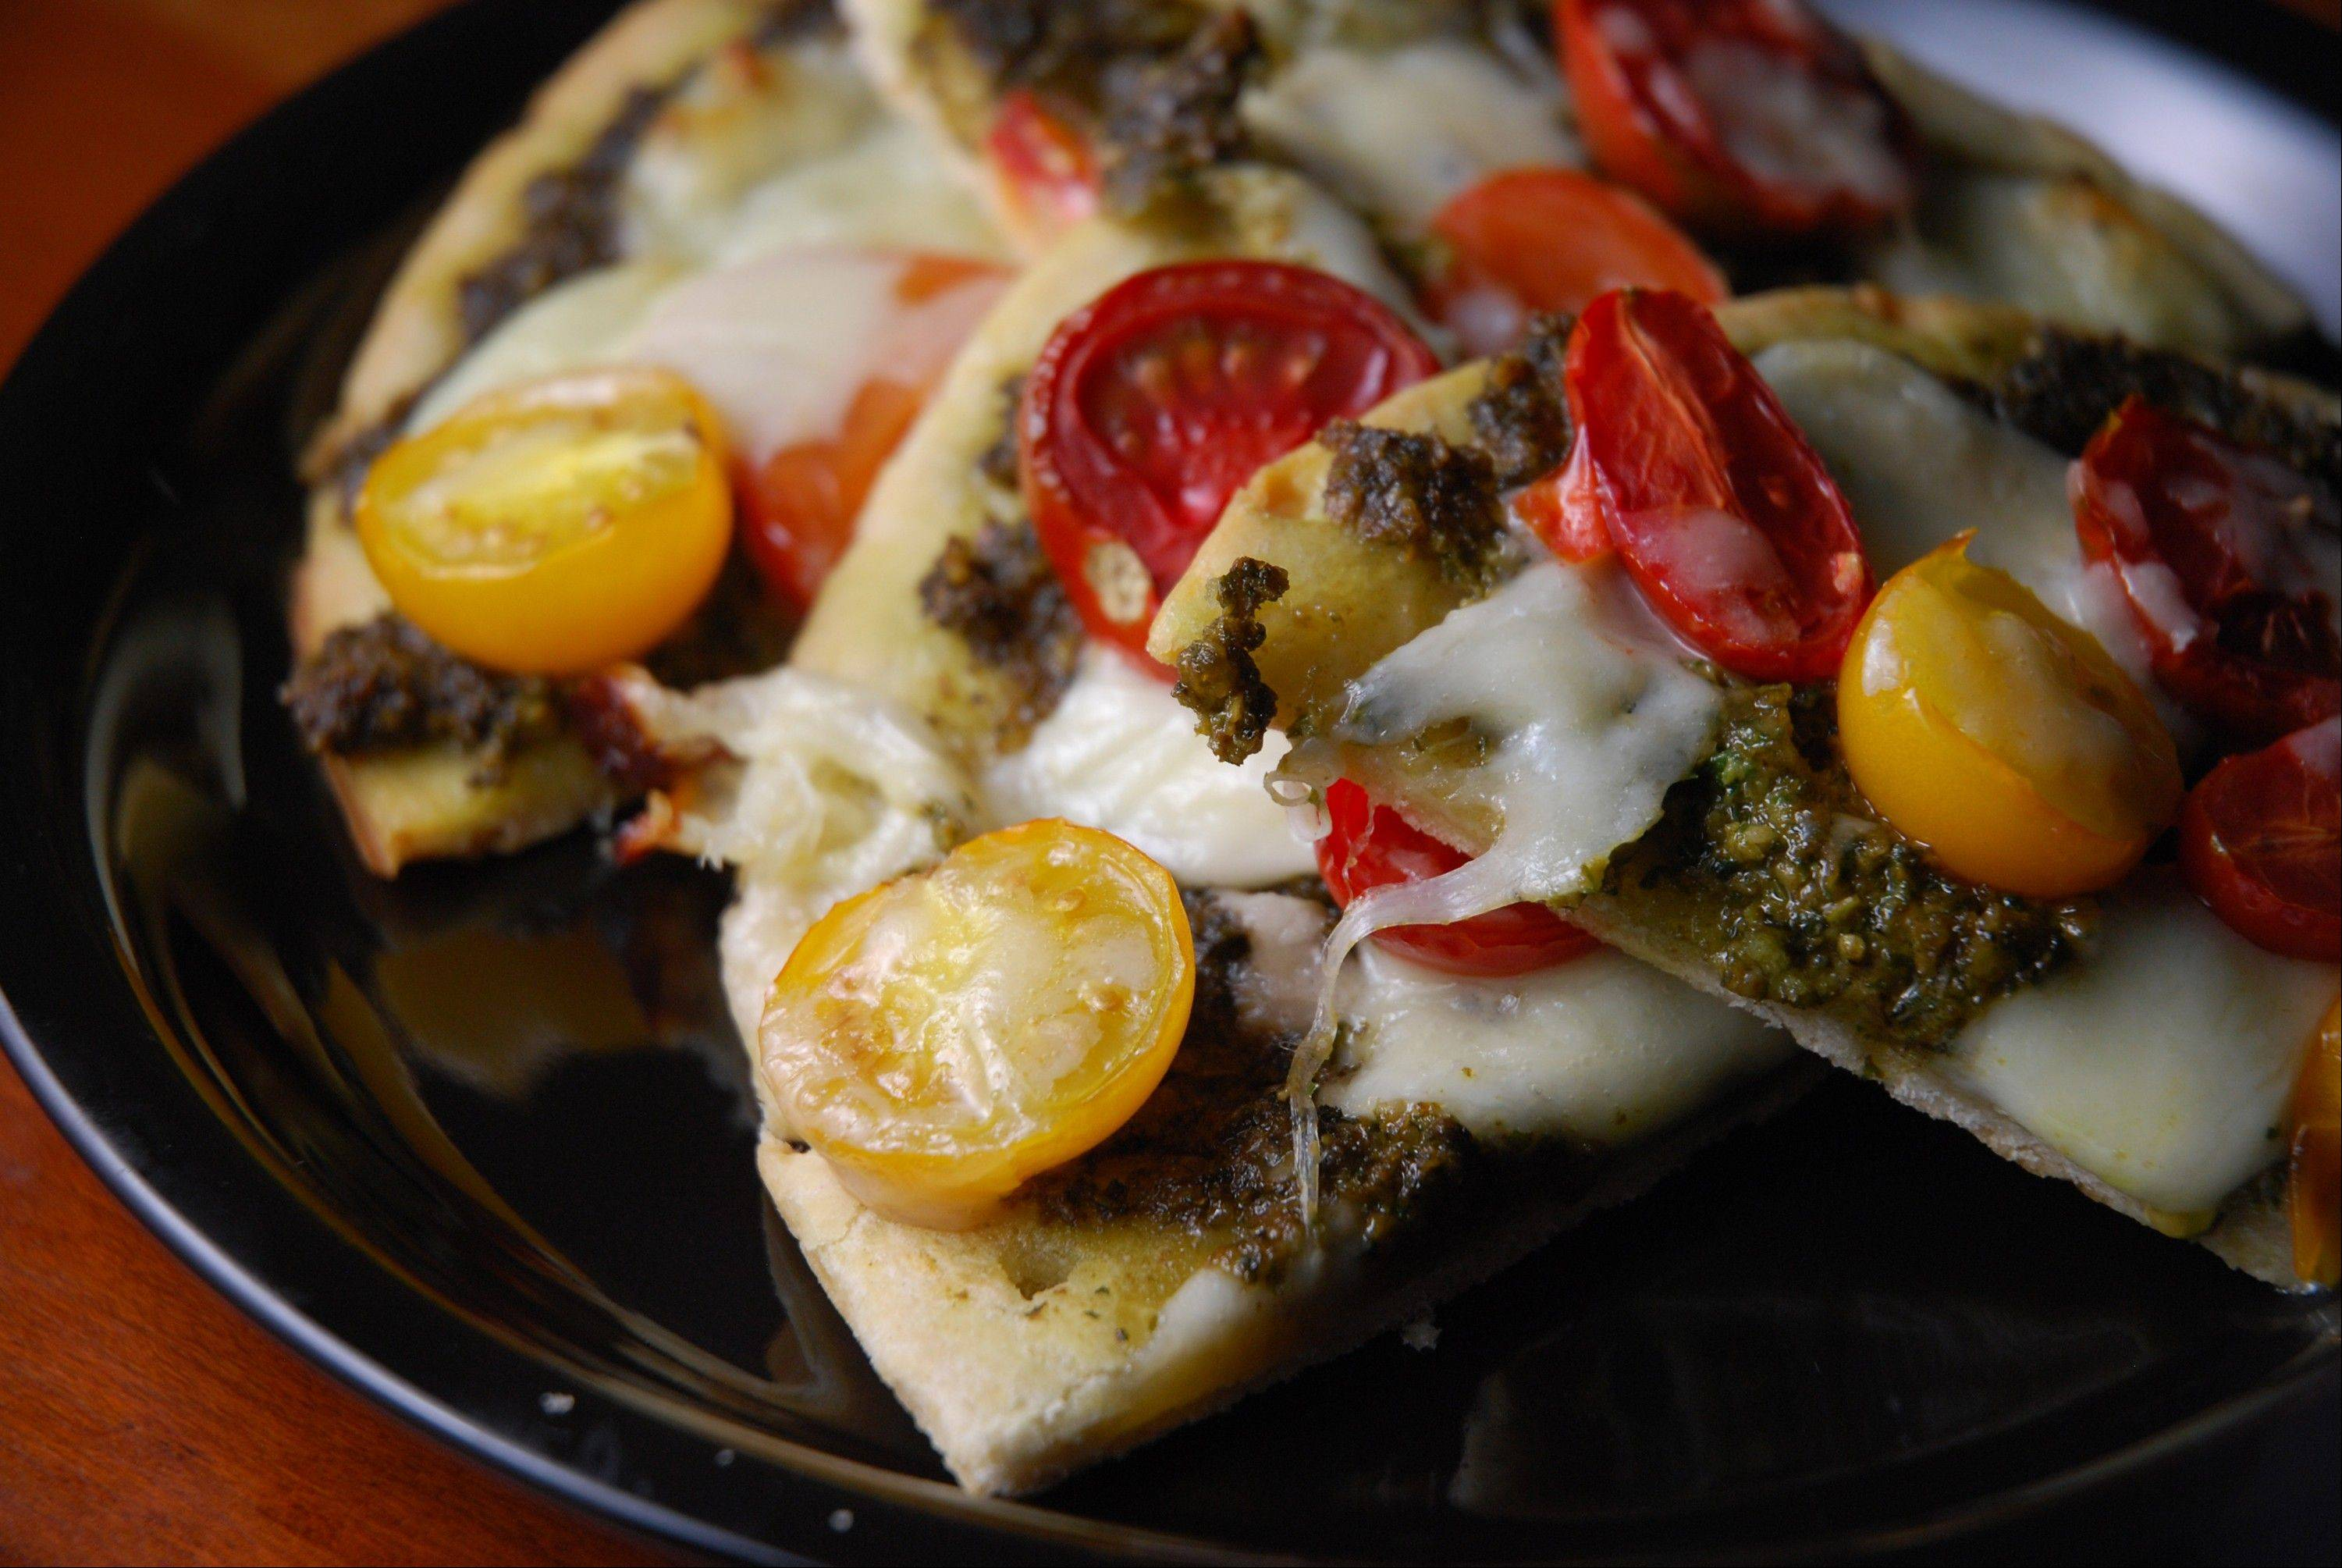 Pesto turns pizza into summery treat